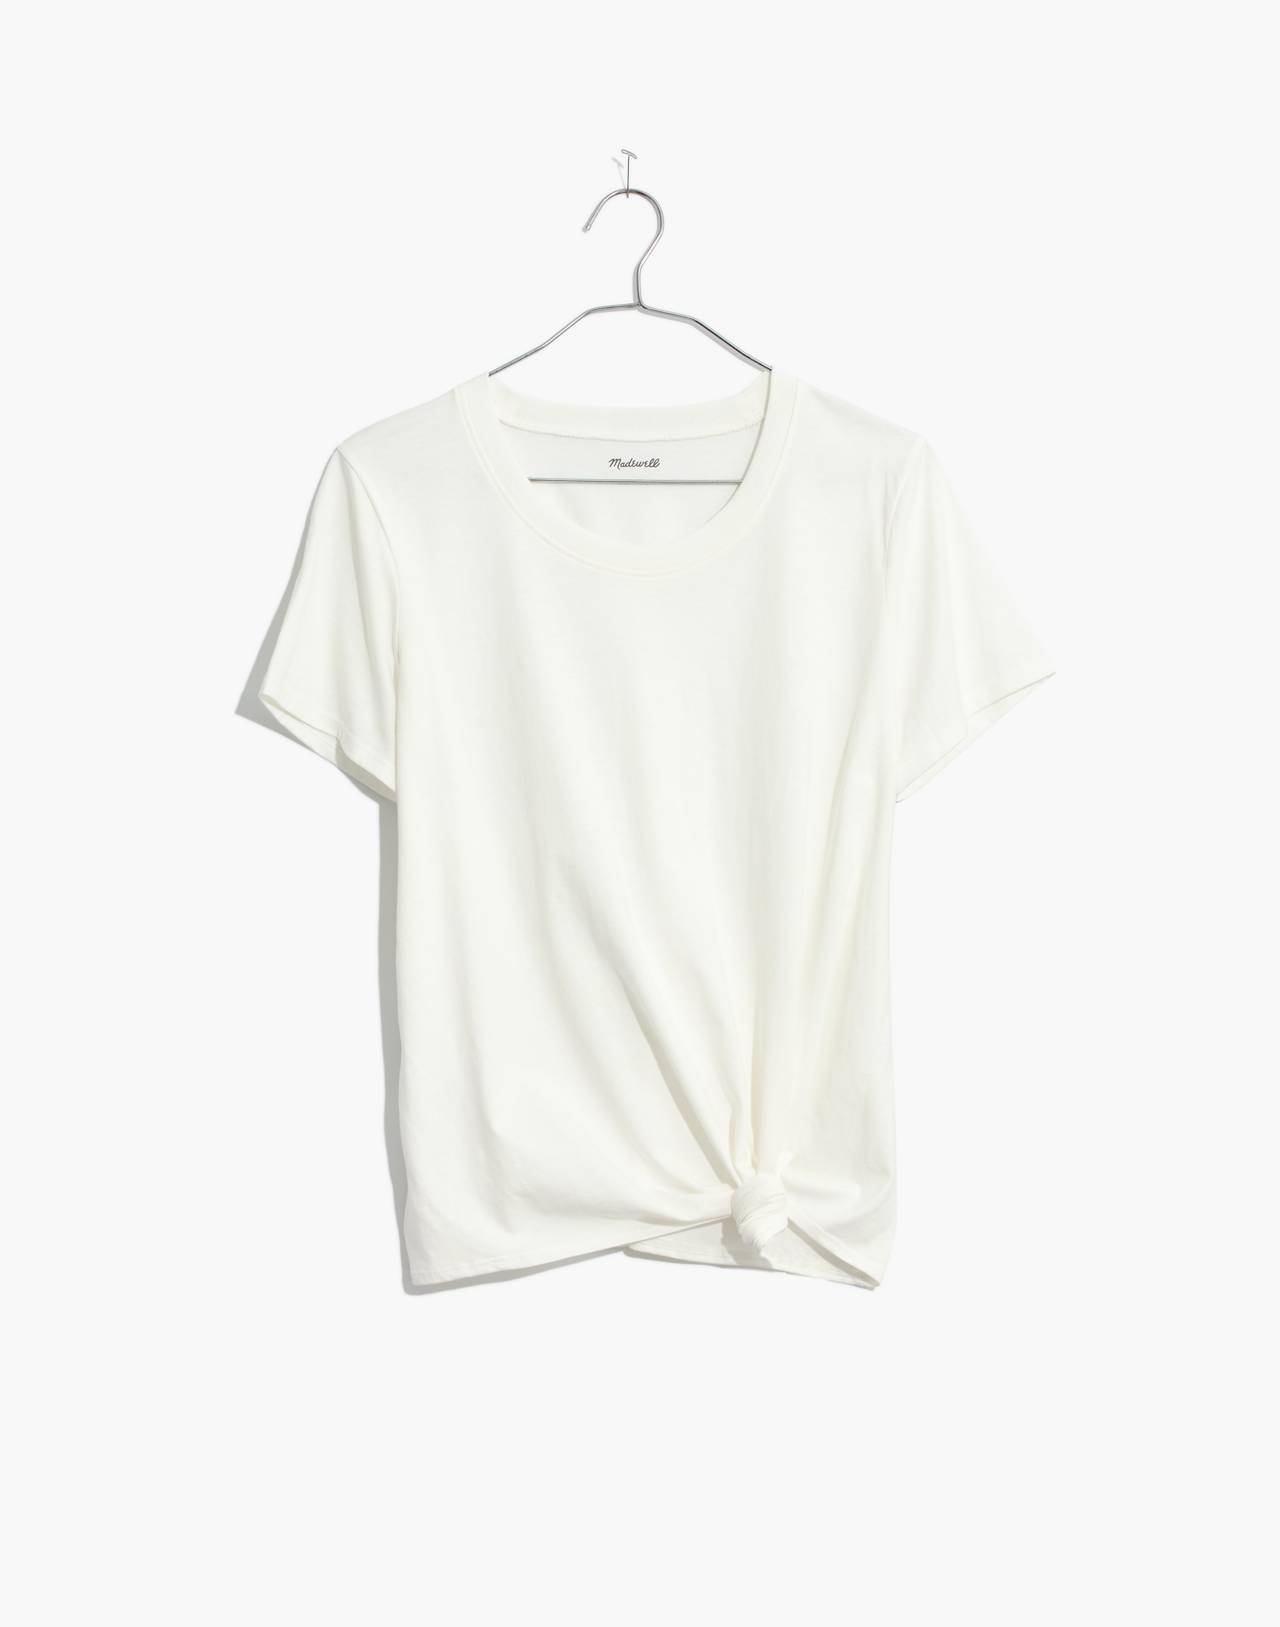 Knot-Front Tee in white wash image 4